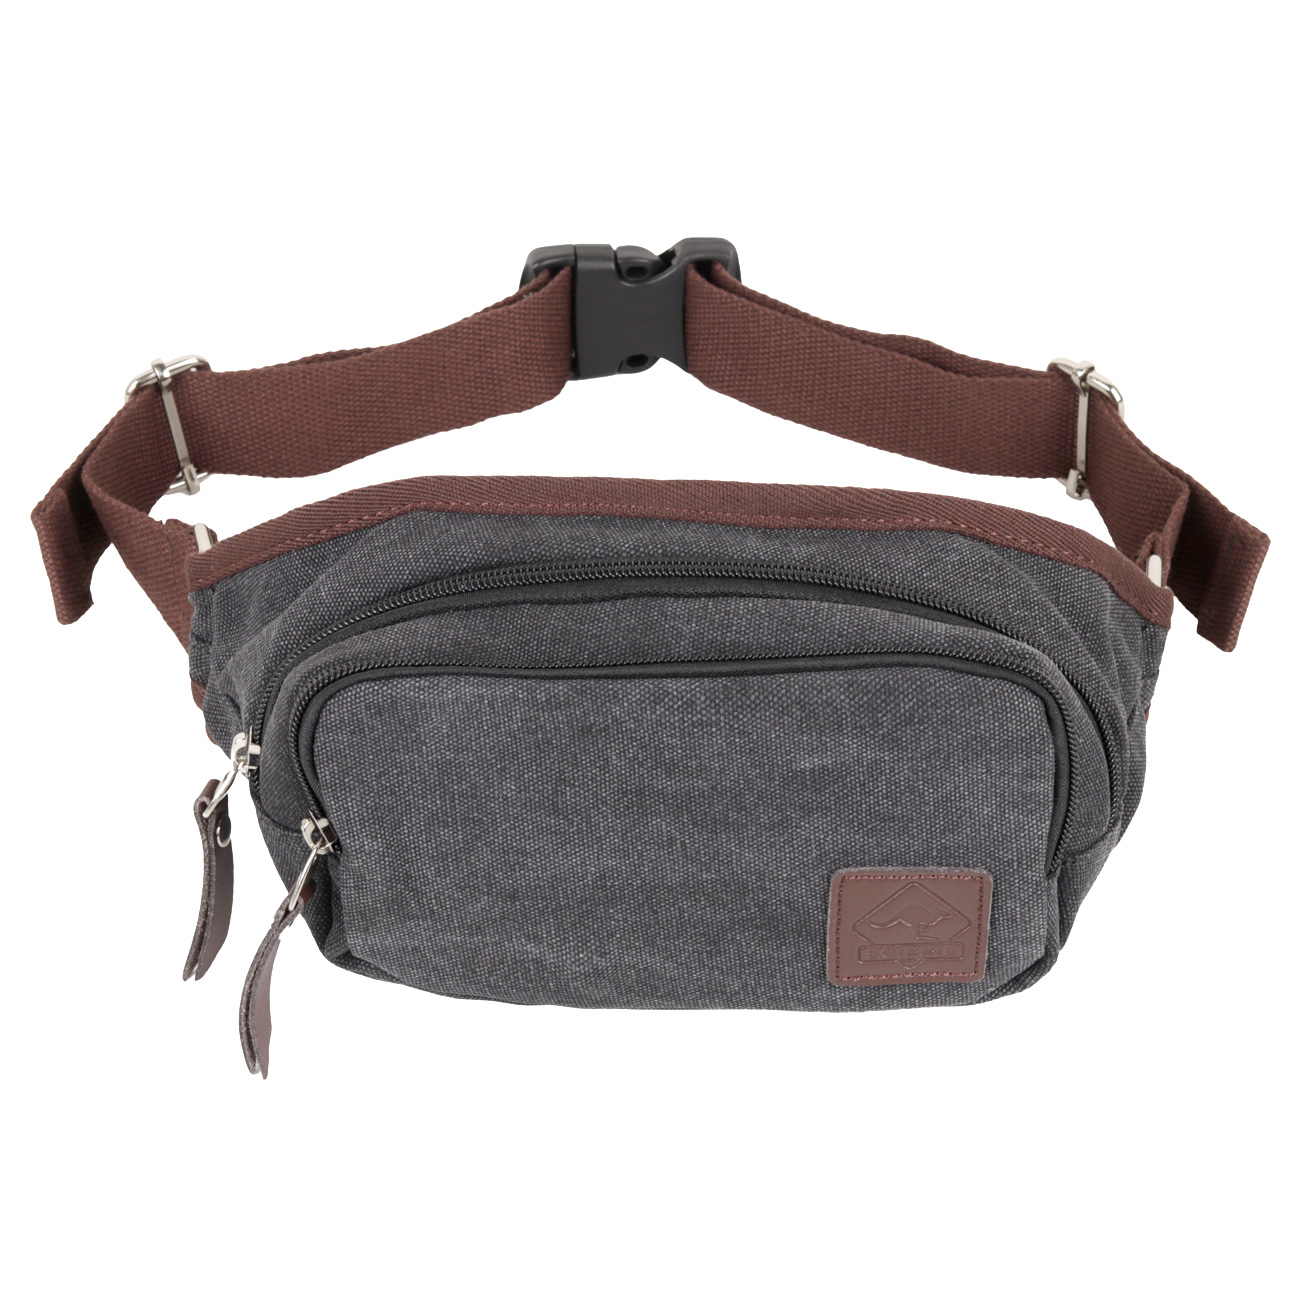 Scippis Gürteltasche Gold Coast Washed Canvas schwarz 0